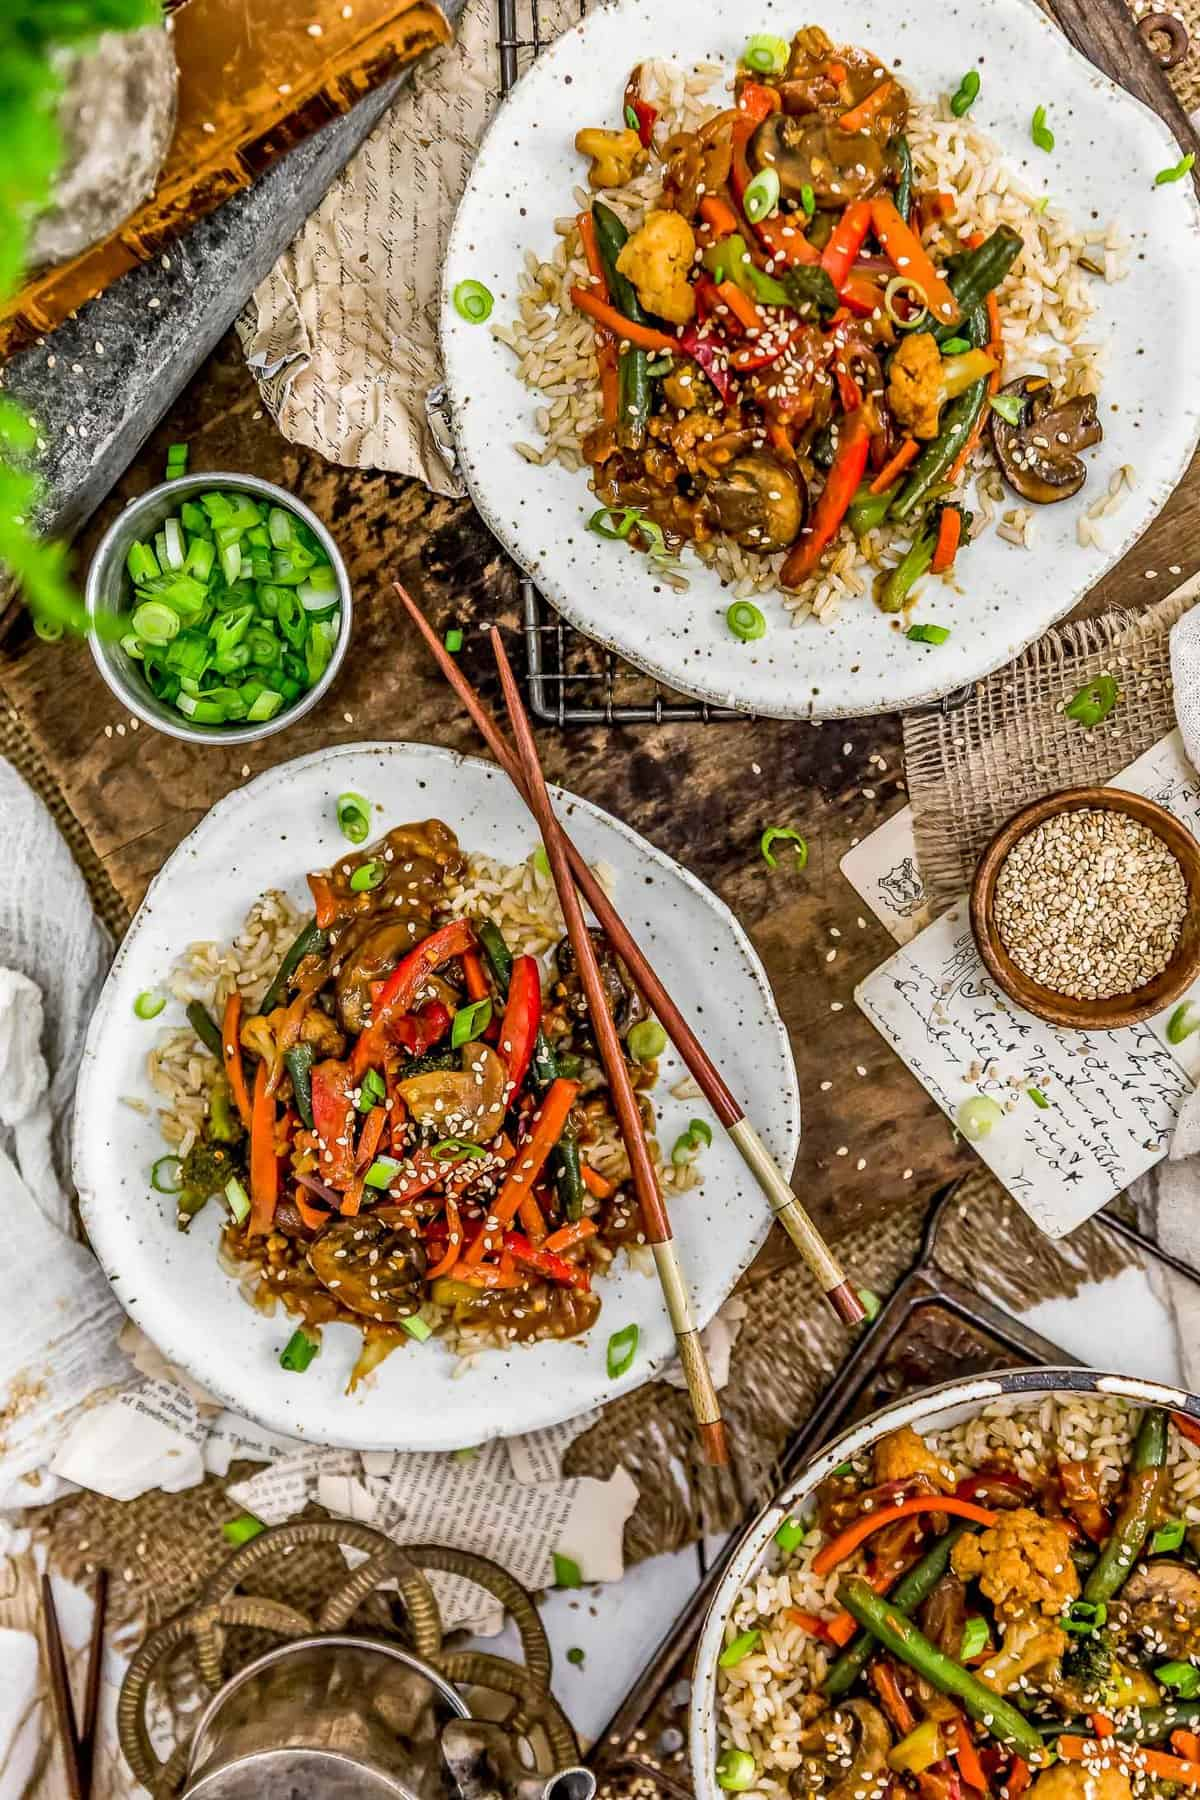 Tablescape of Szechuan Veggie Stir Fry